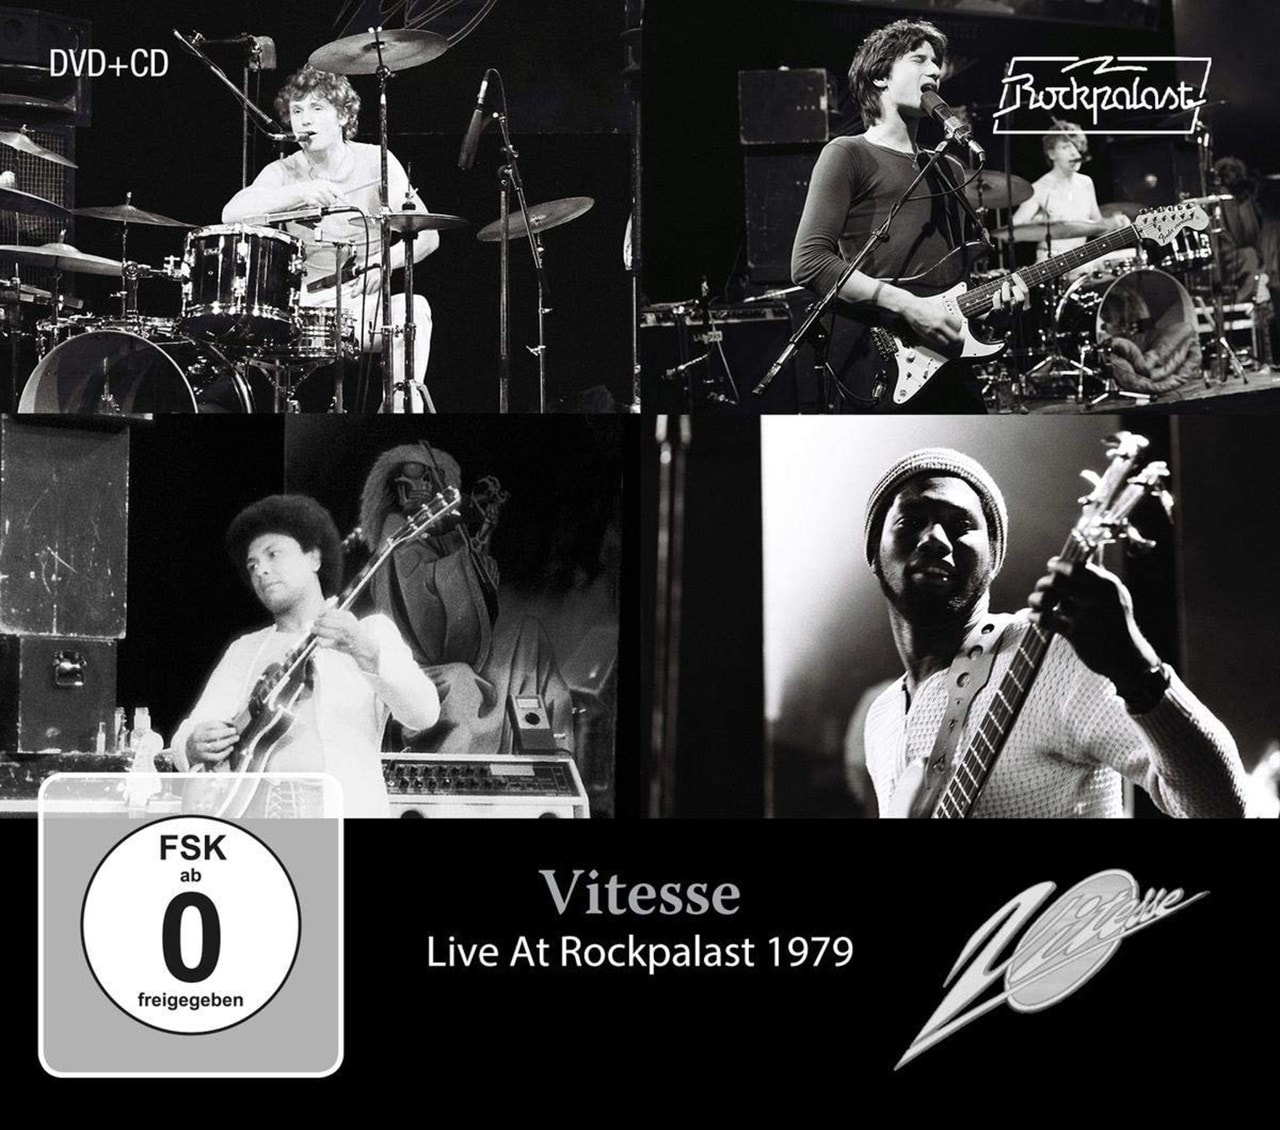 Live at Rockpalast 1979 - 1